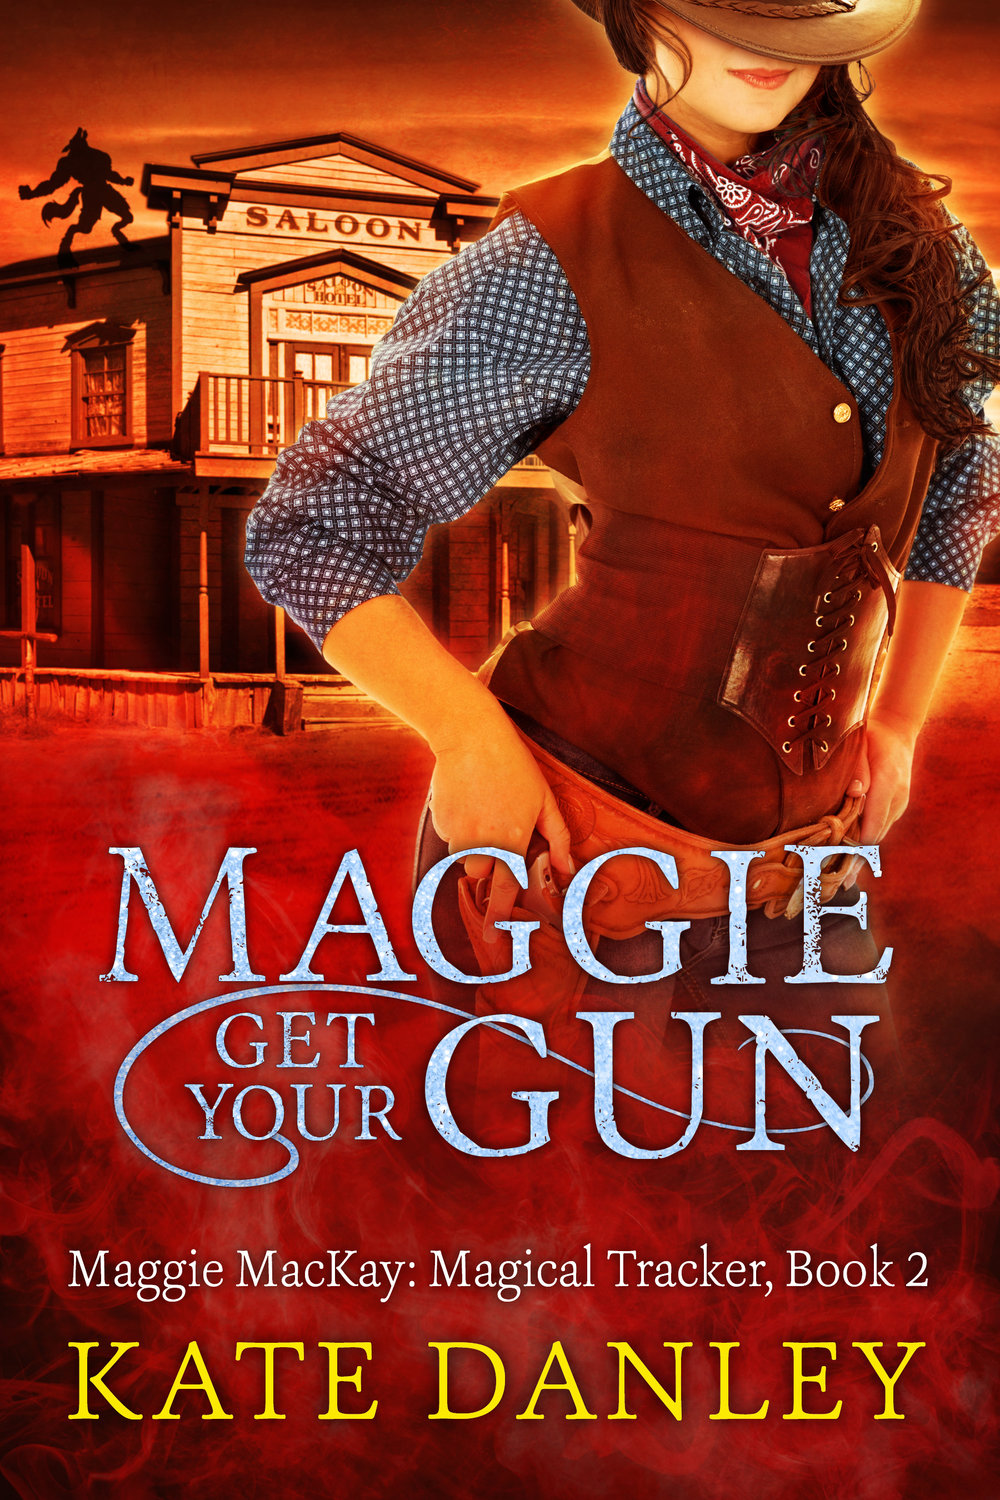 Maggie-Get-Your-Gun_ebook.jpg